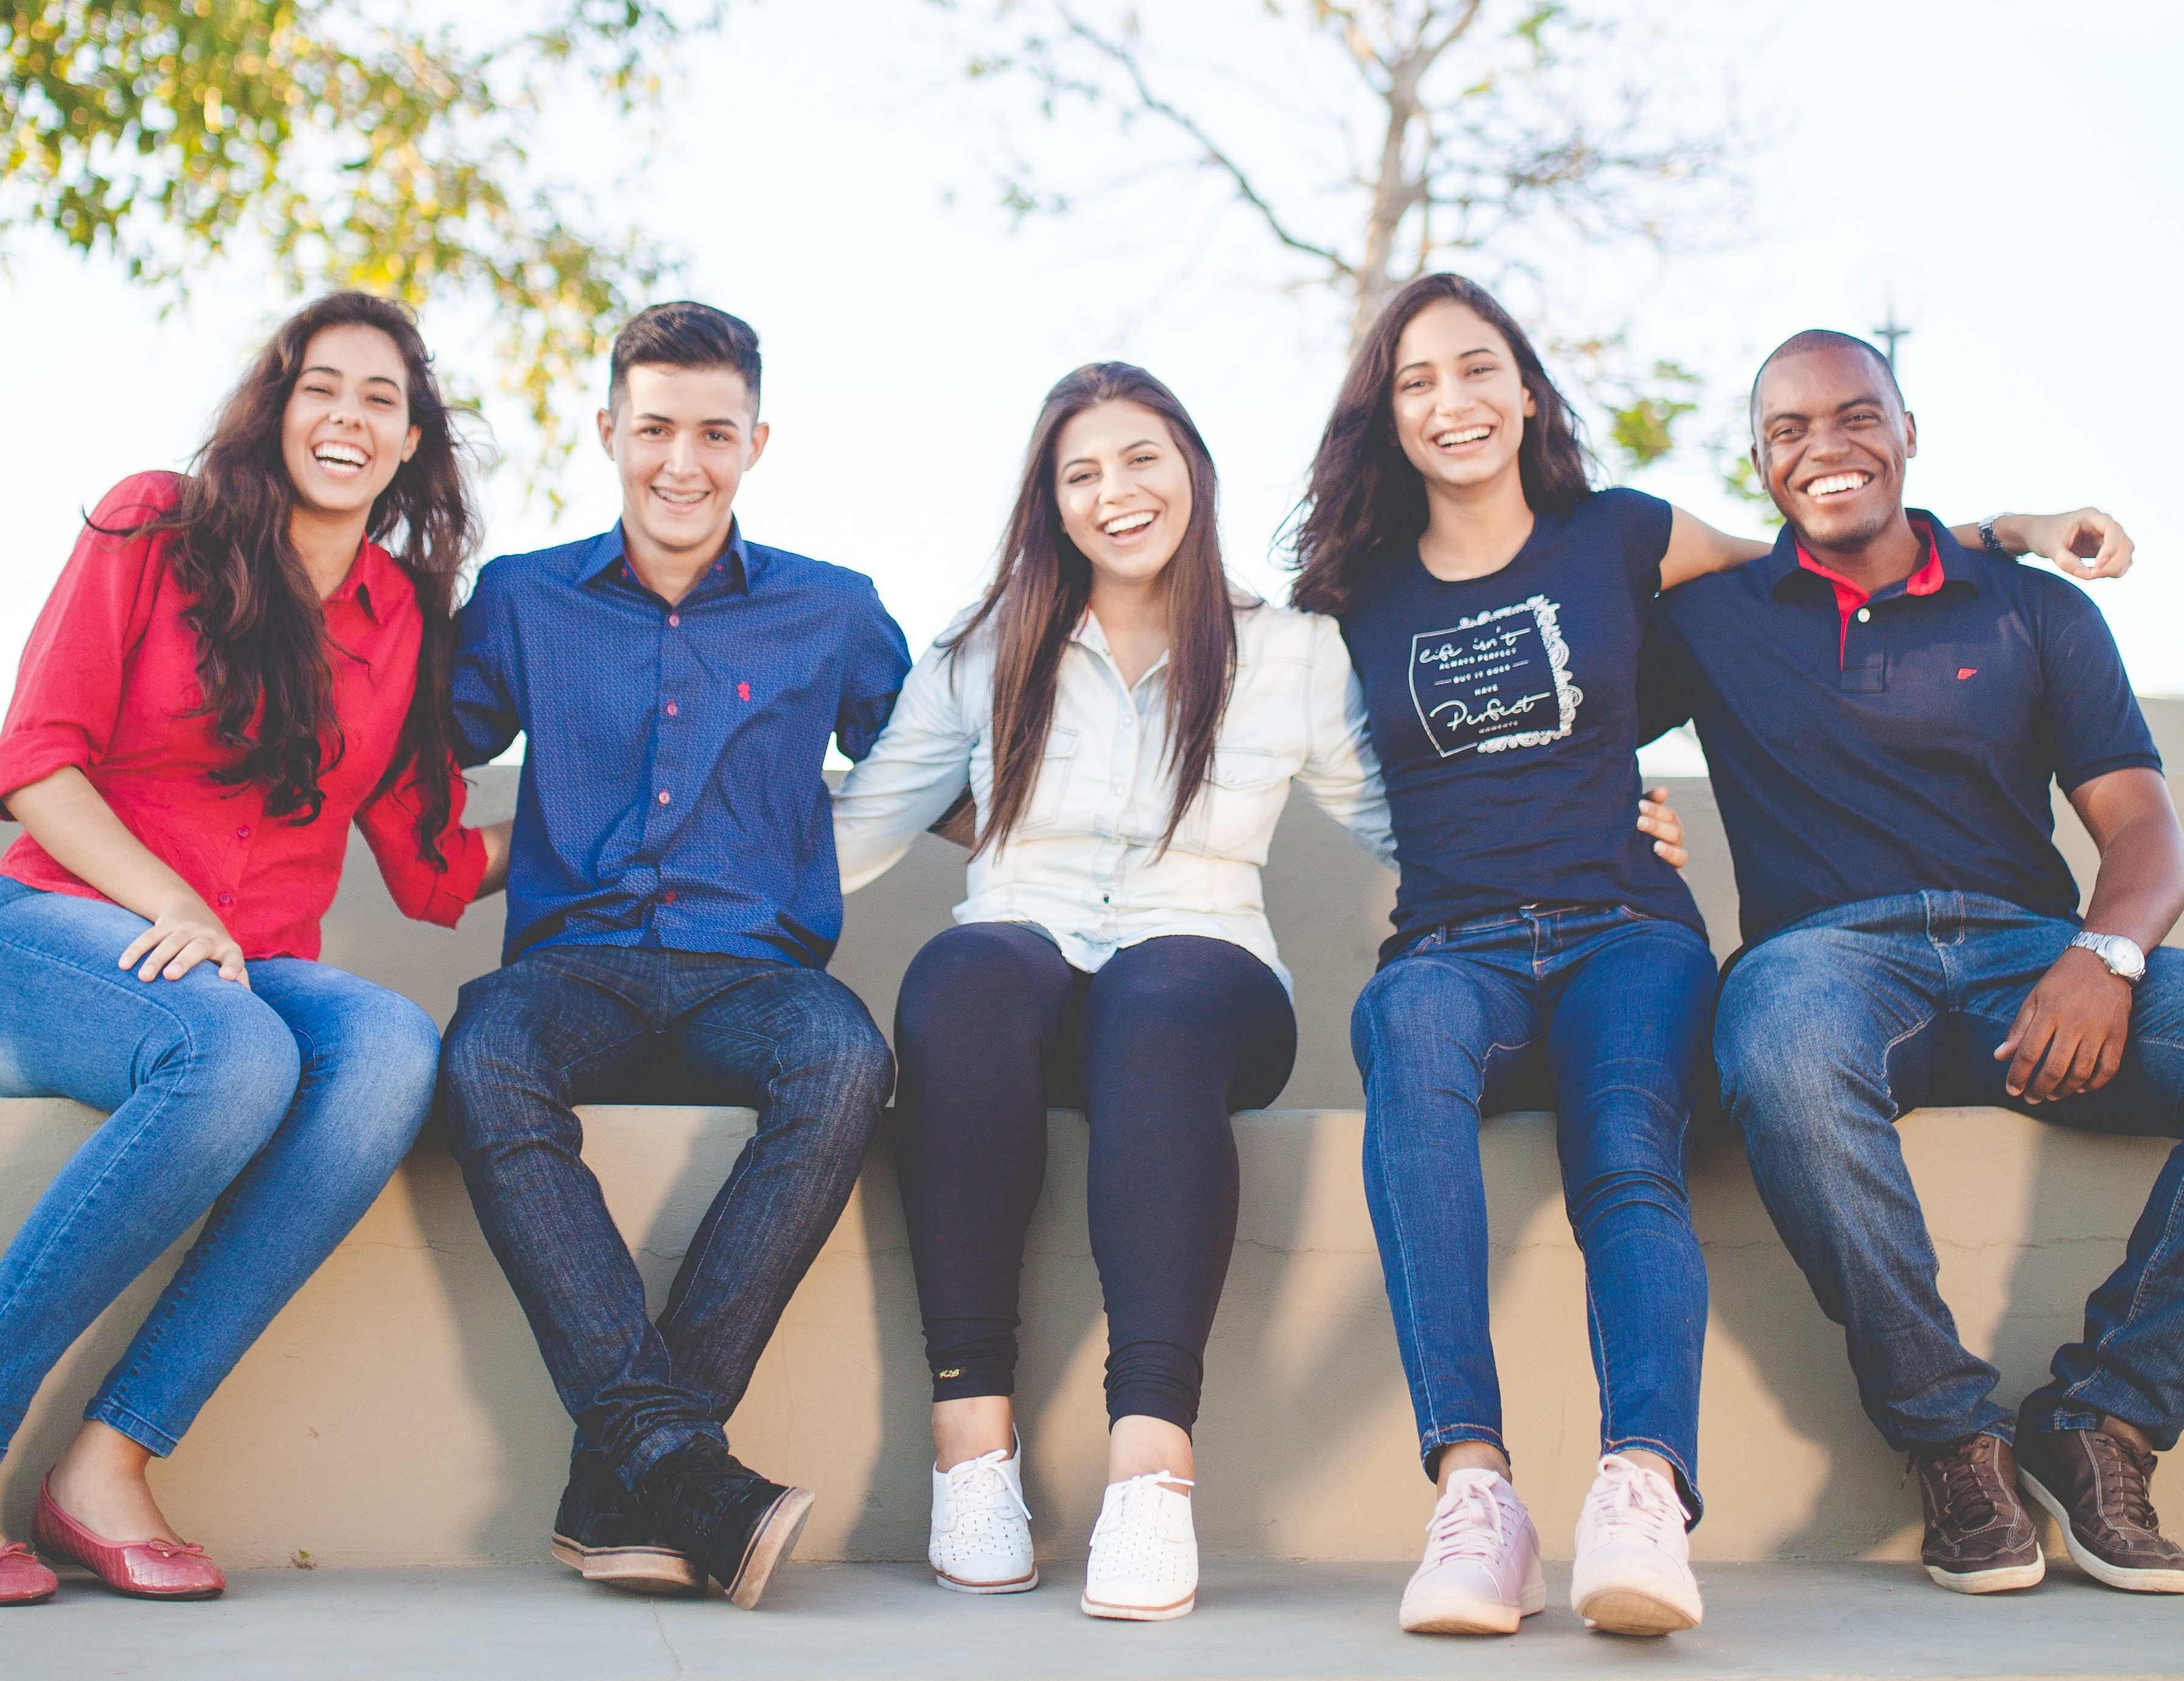 Group of 5 students sitting together and smiling